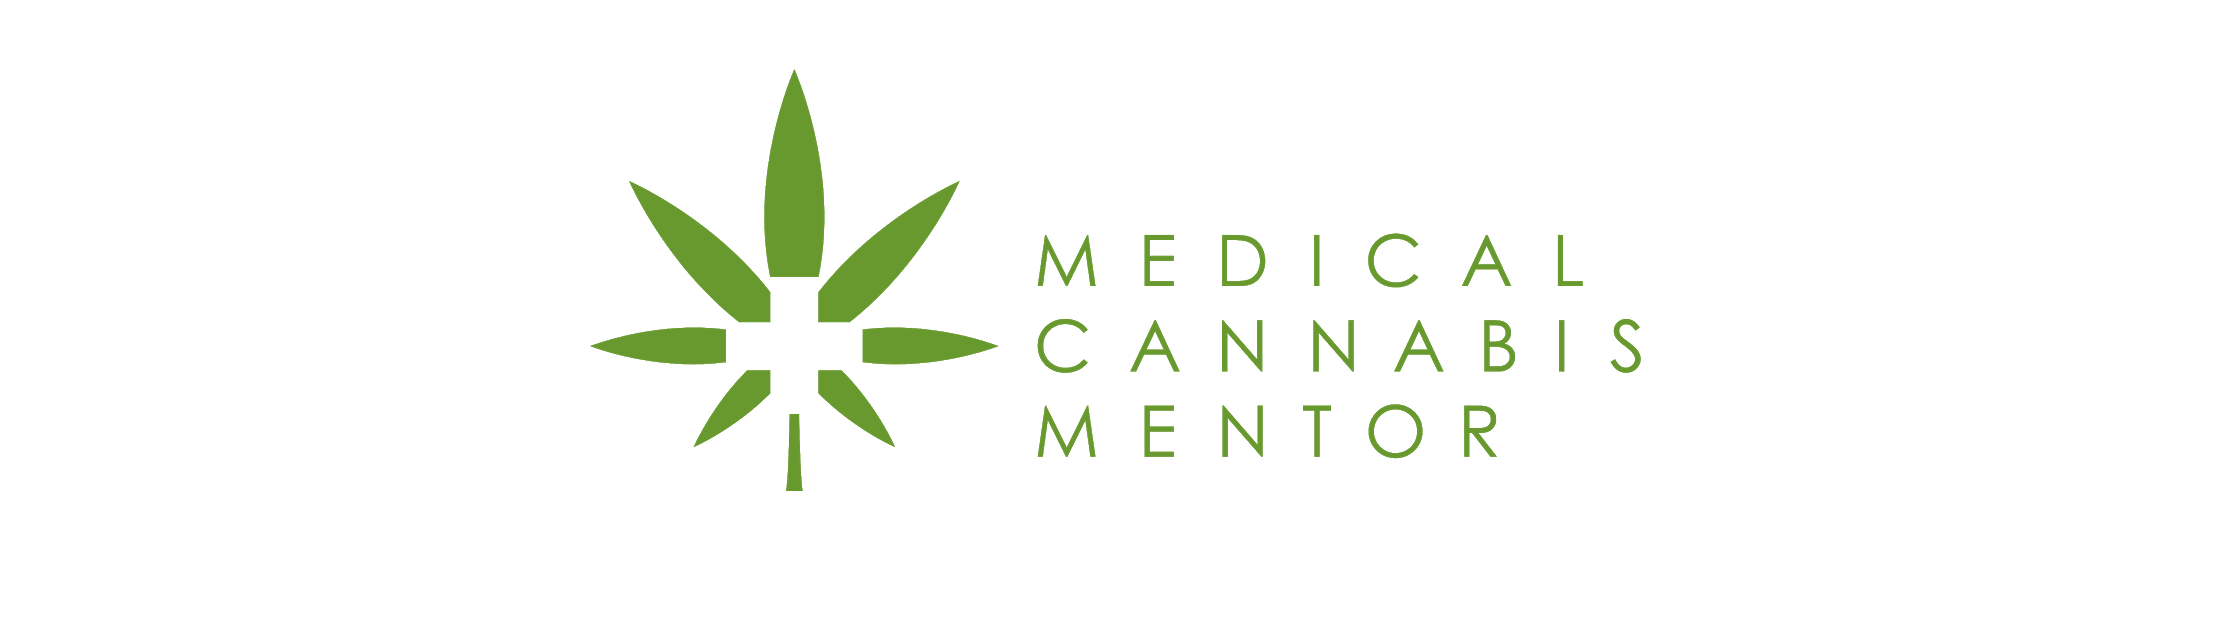 Medical Cannabis Mentor logo.png